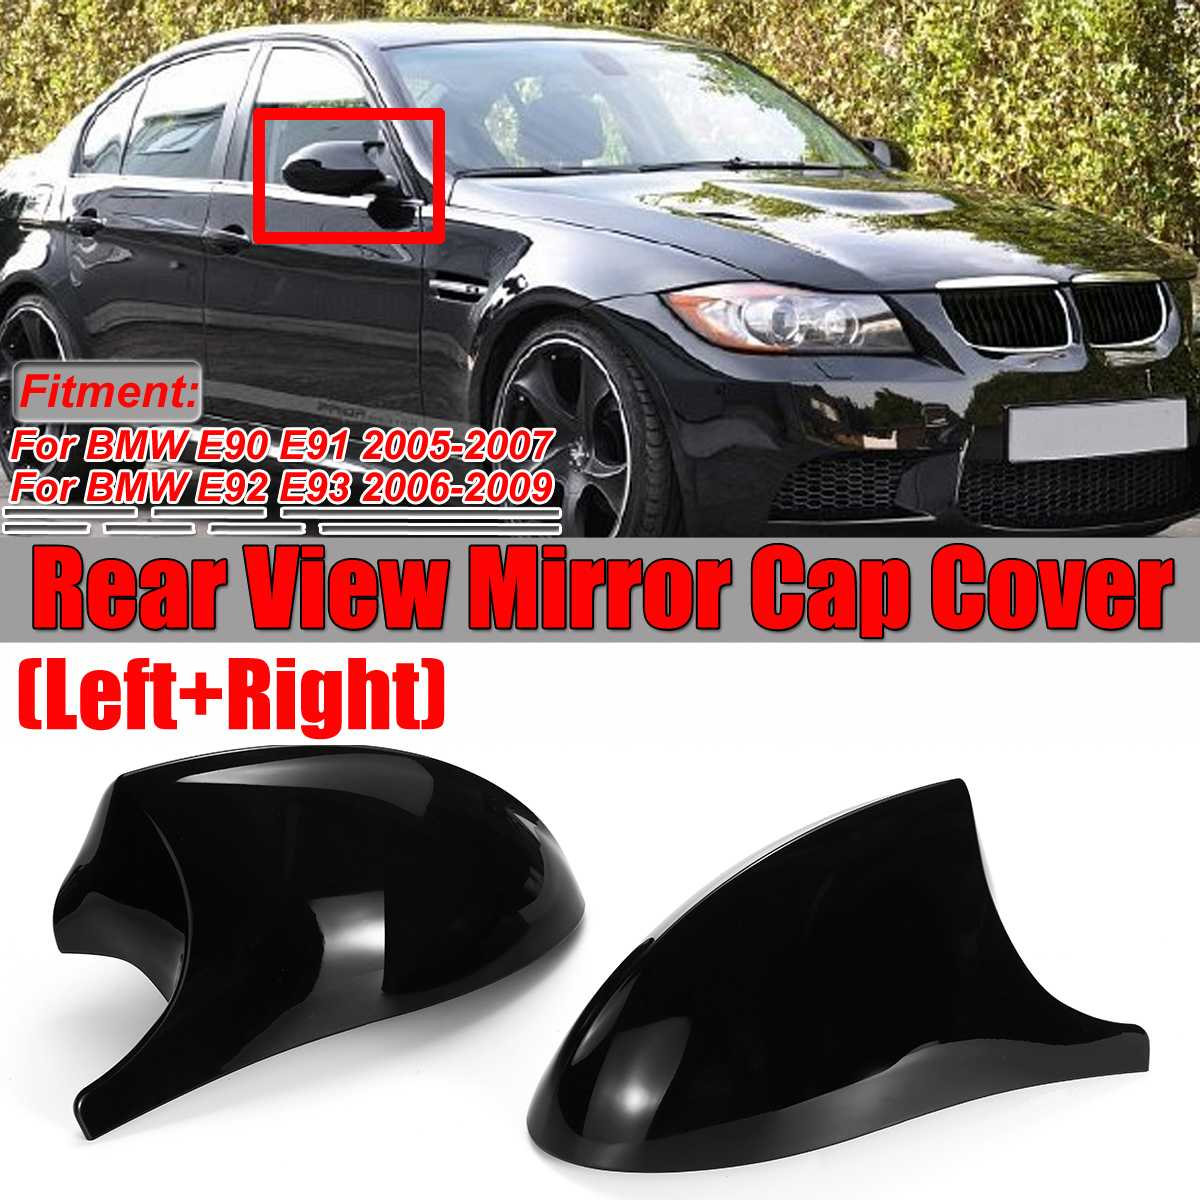 2x real da fibra do carbono/abs espelho capa e90 retrovisor lateral do carro tampa para bmw e90 e91 e92 e93 m3 estilo e80 e81 e87